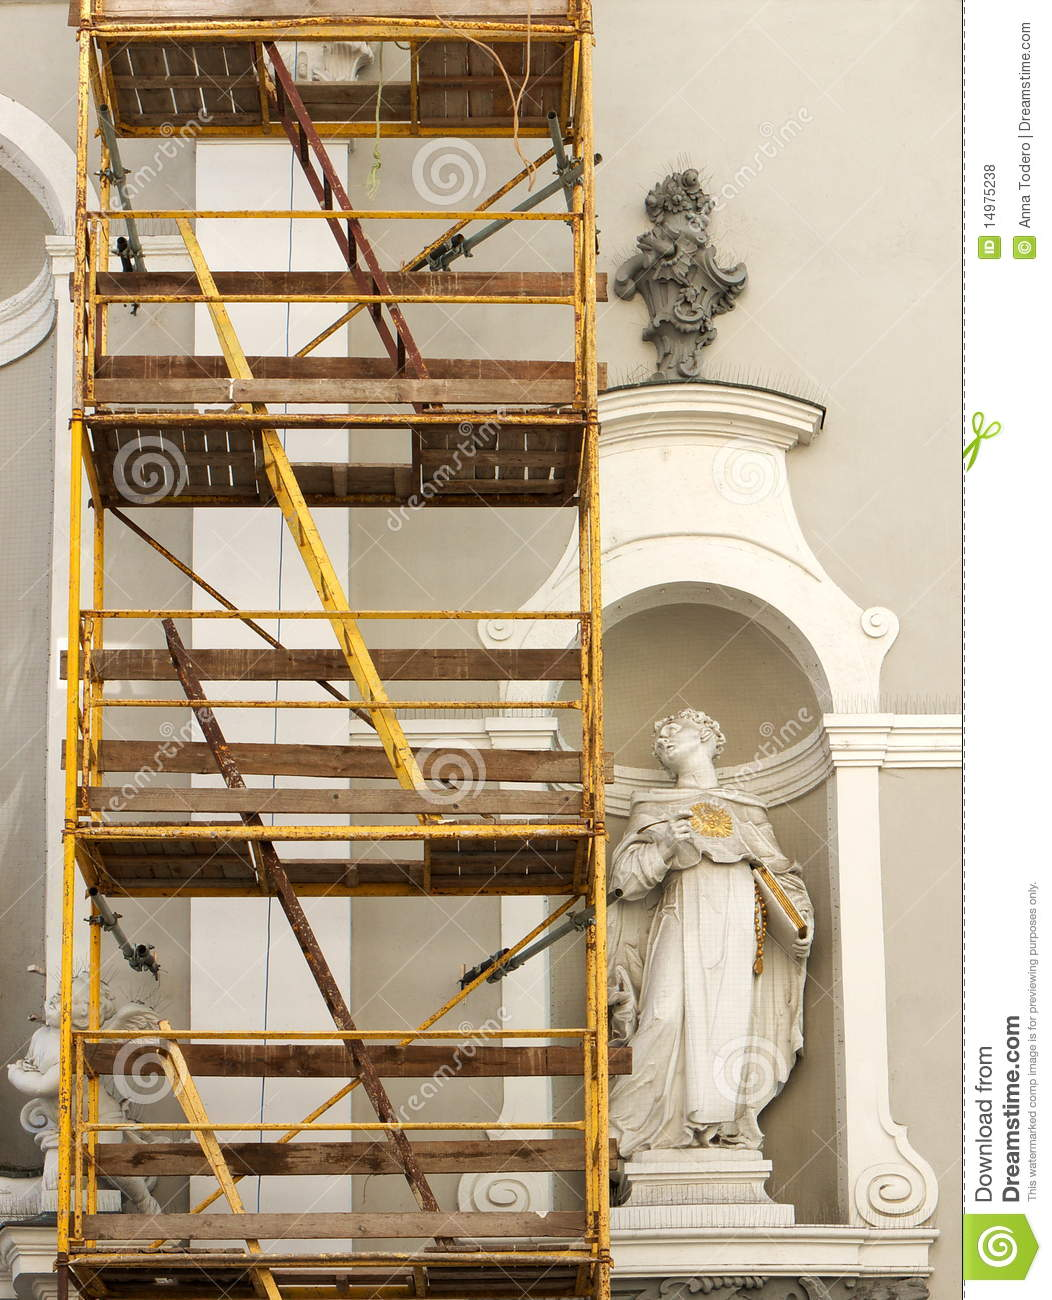 Old Church Under Renovation Royalty Free Stock Photos - Image ...